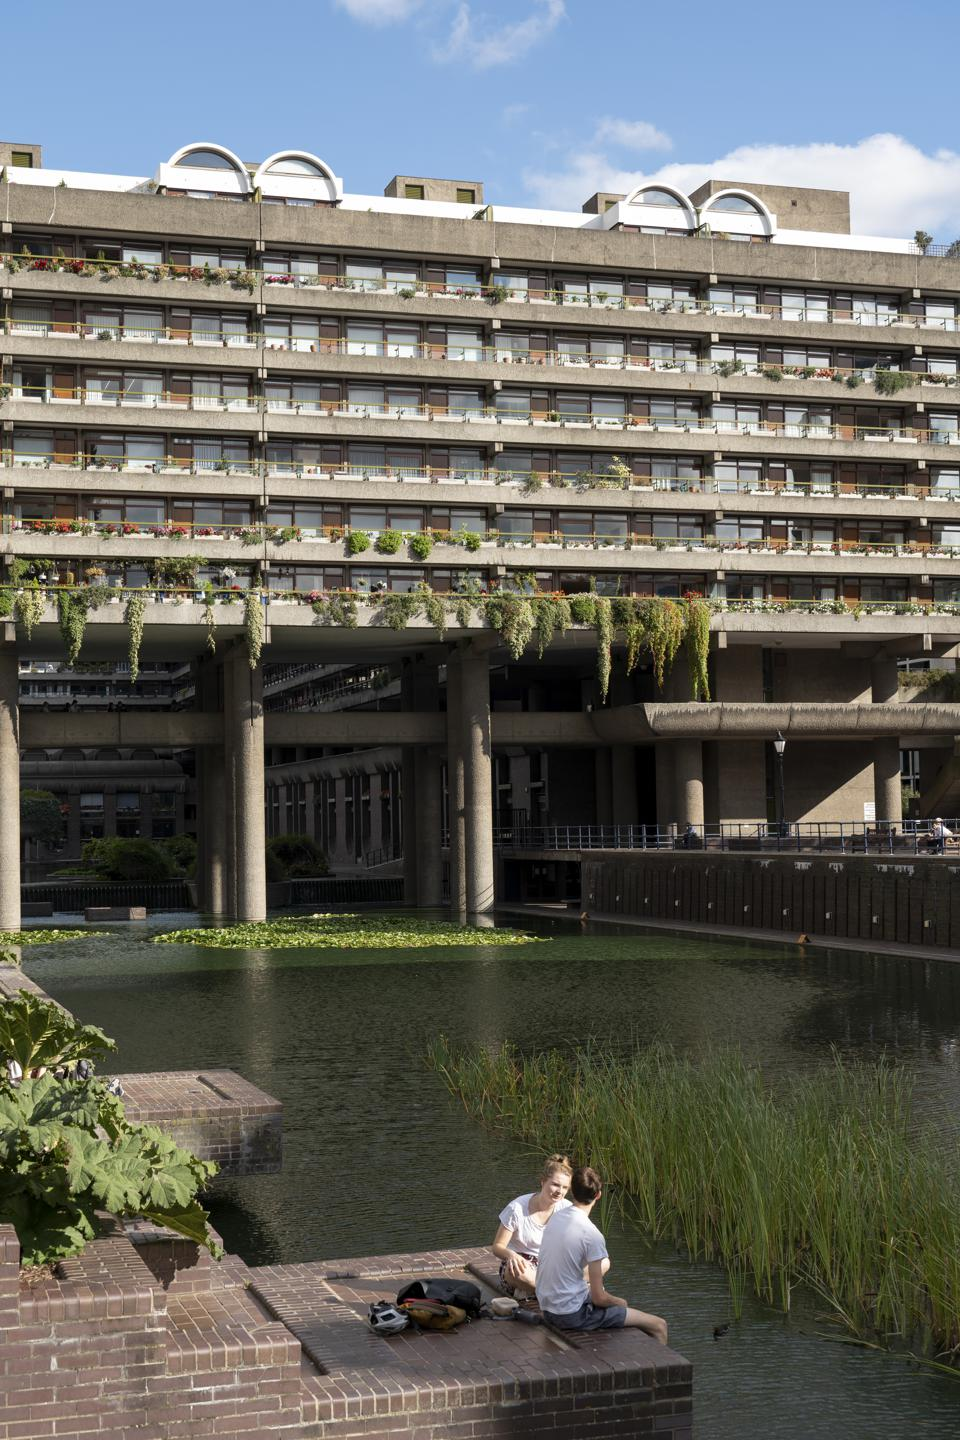 The Barbican Centre In East London